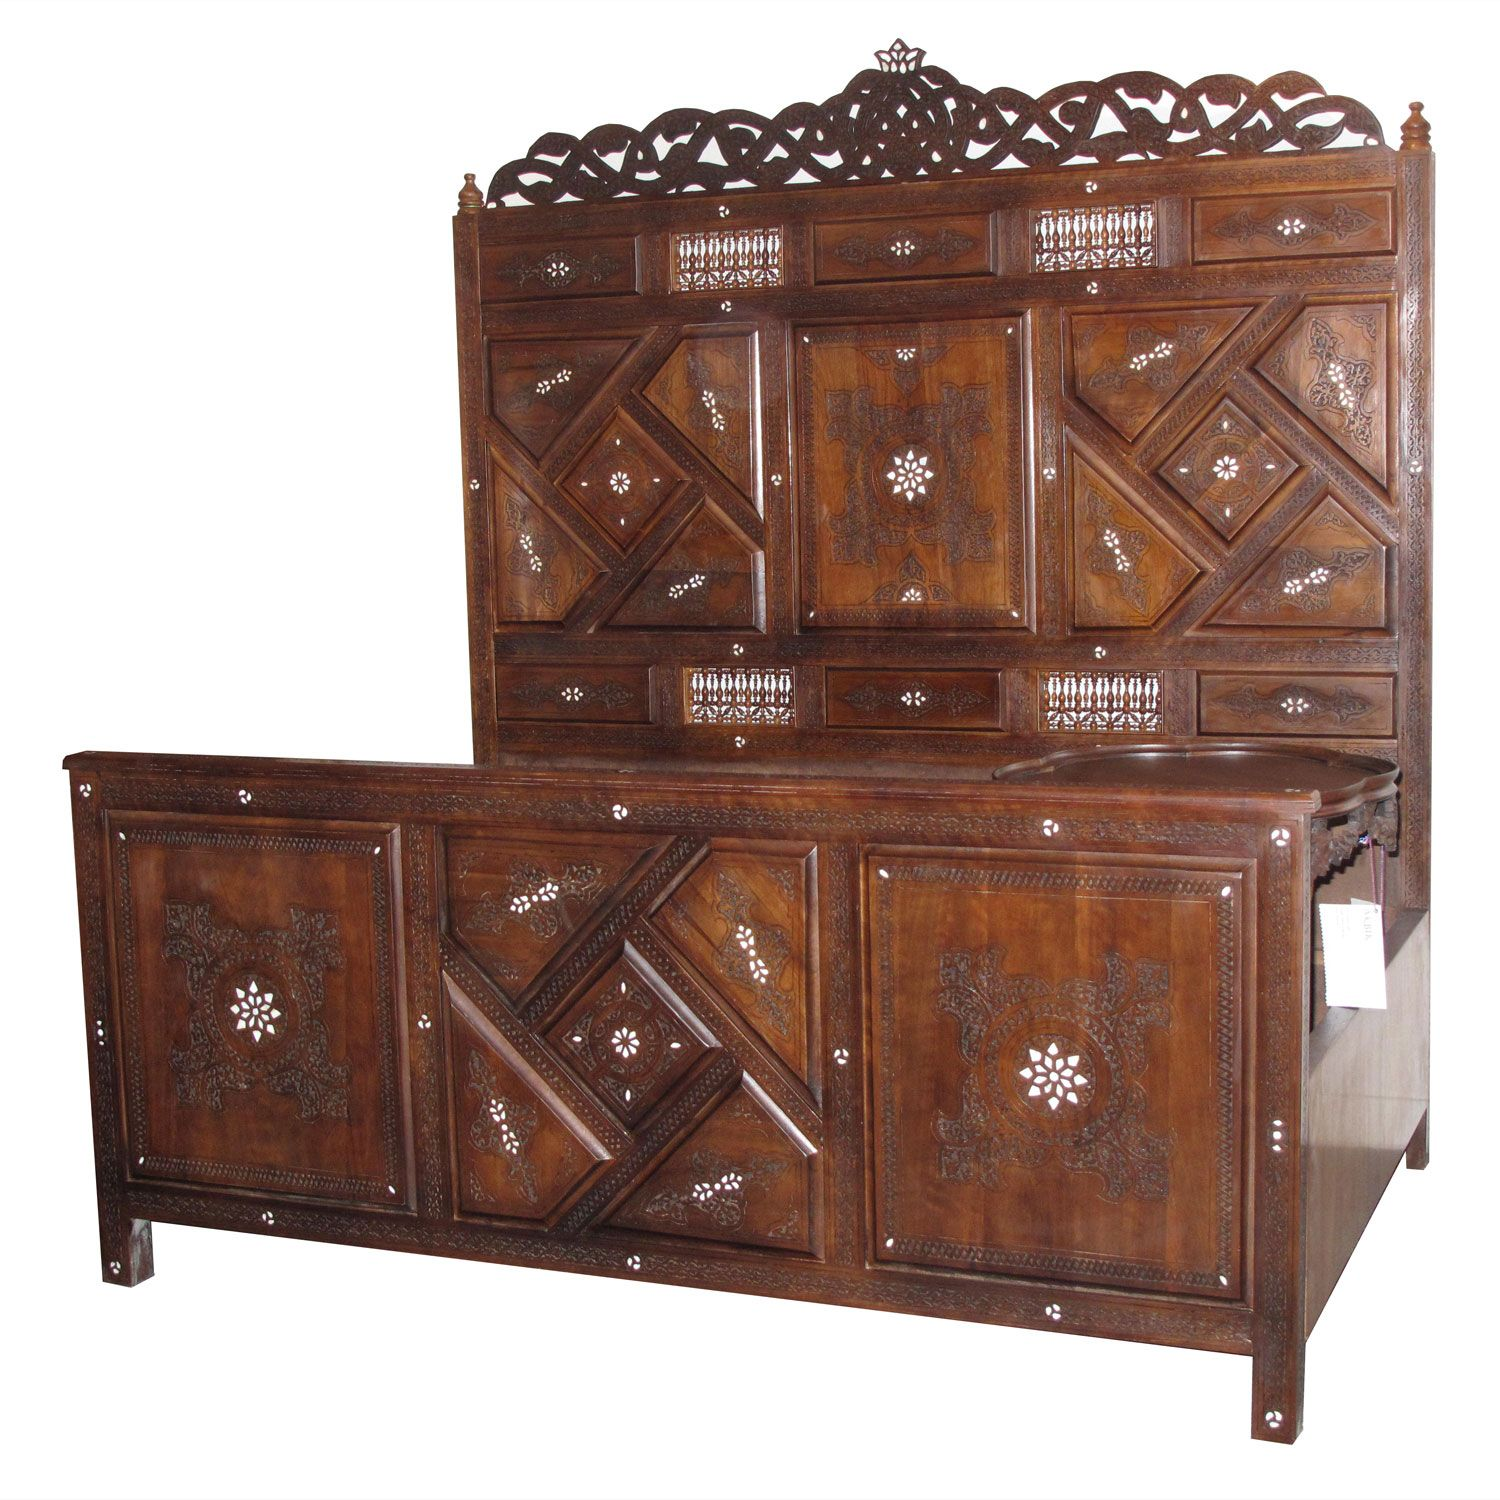 Moroccan Syrian Furniture Middle Eastern Walnut Bed With Mother Of Pearl